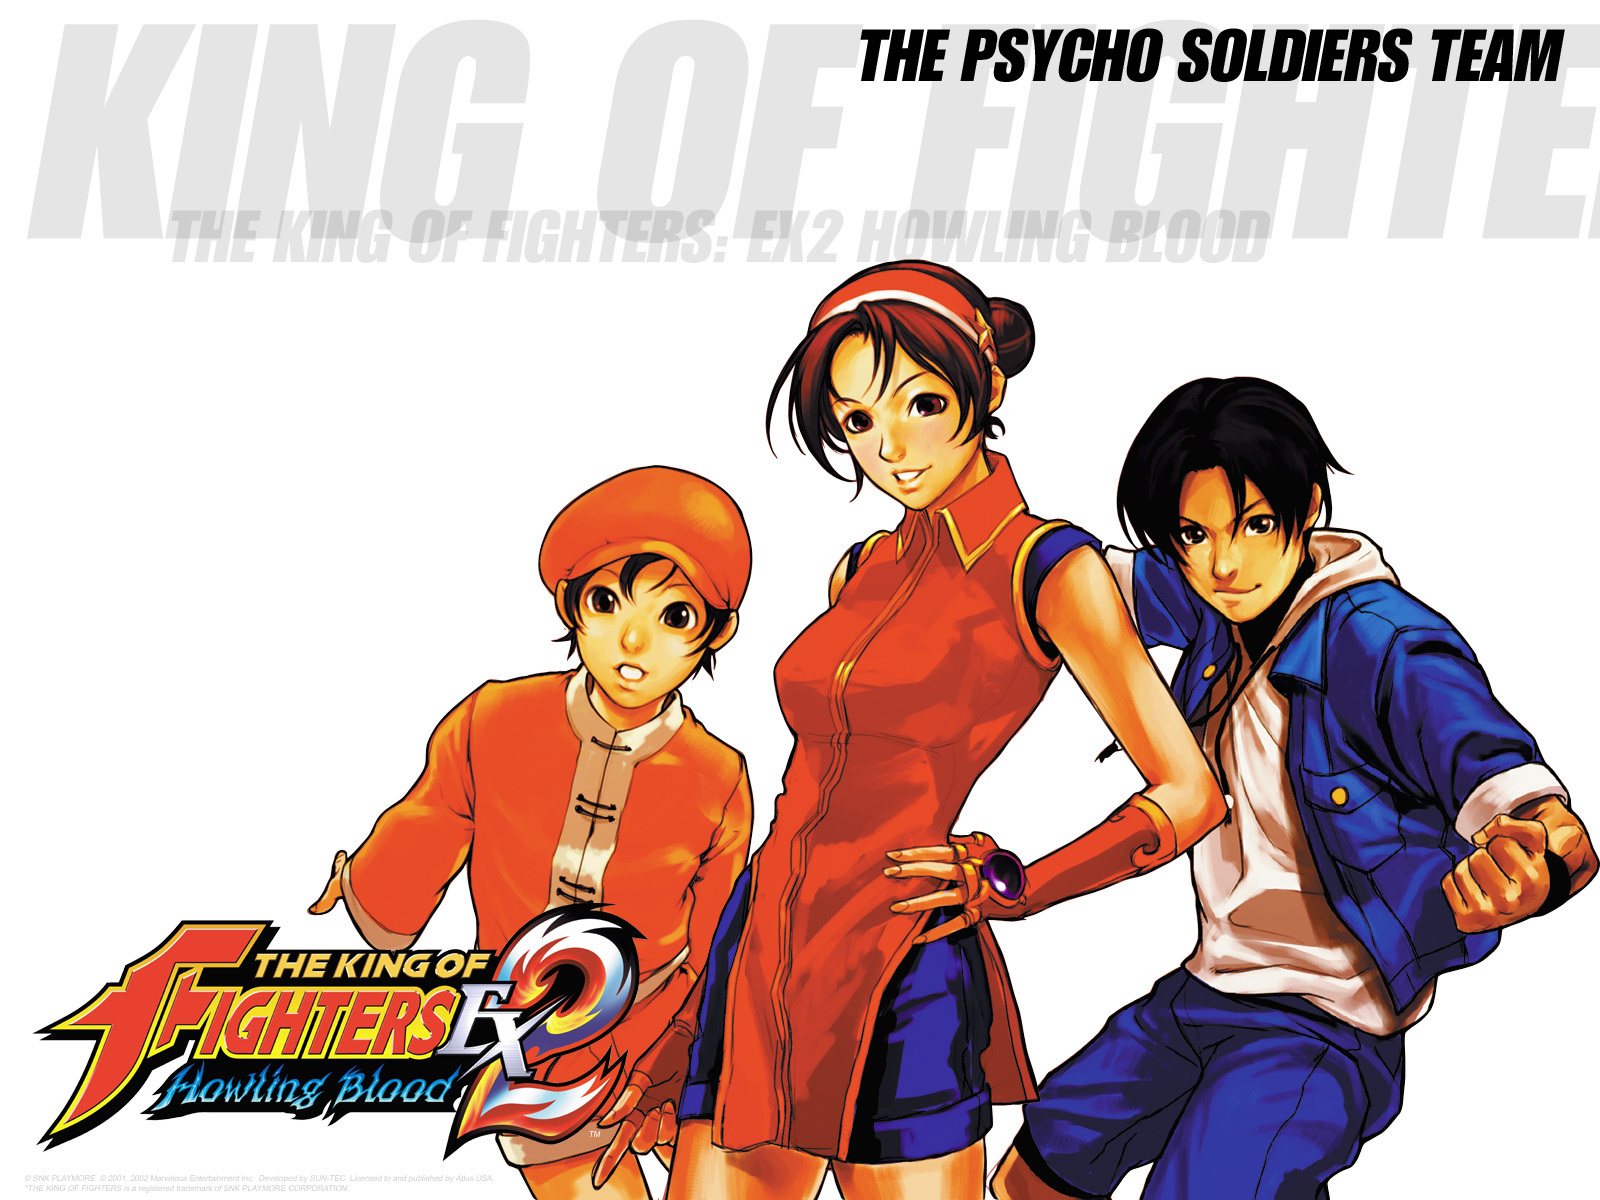 KOF EX2 -psycho soldiers team